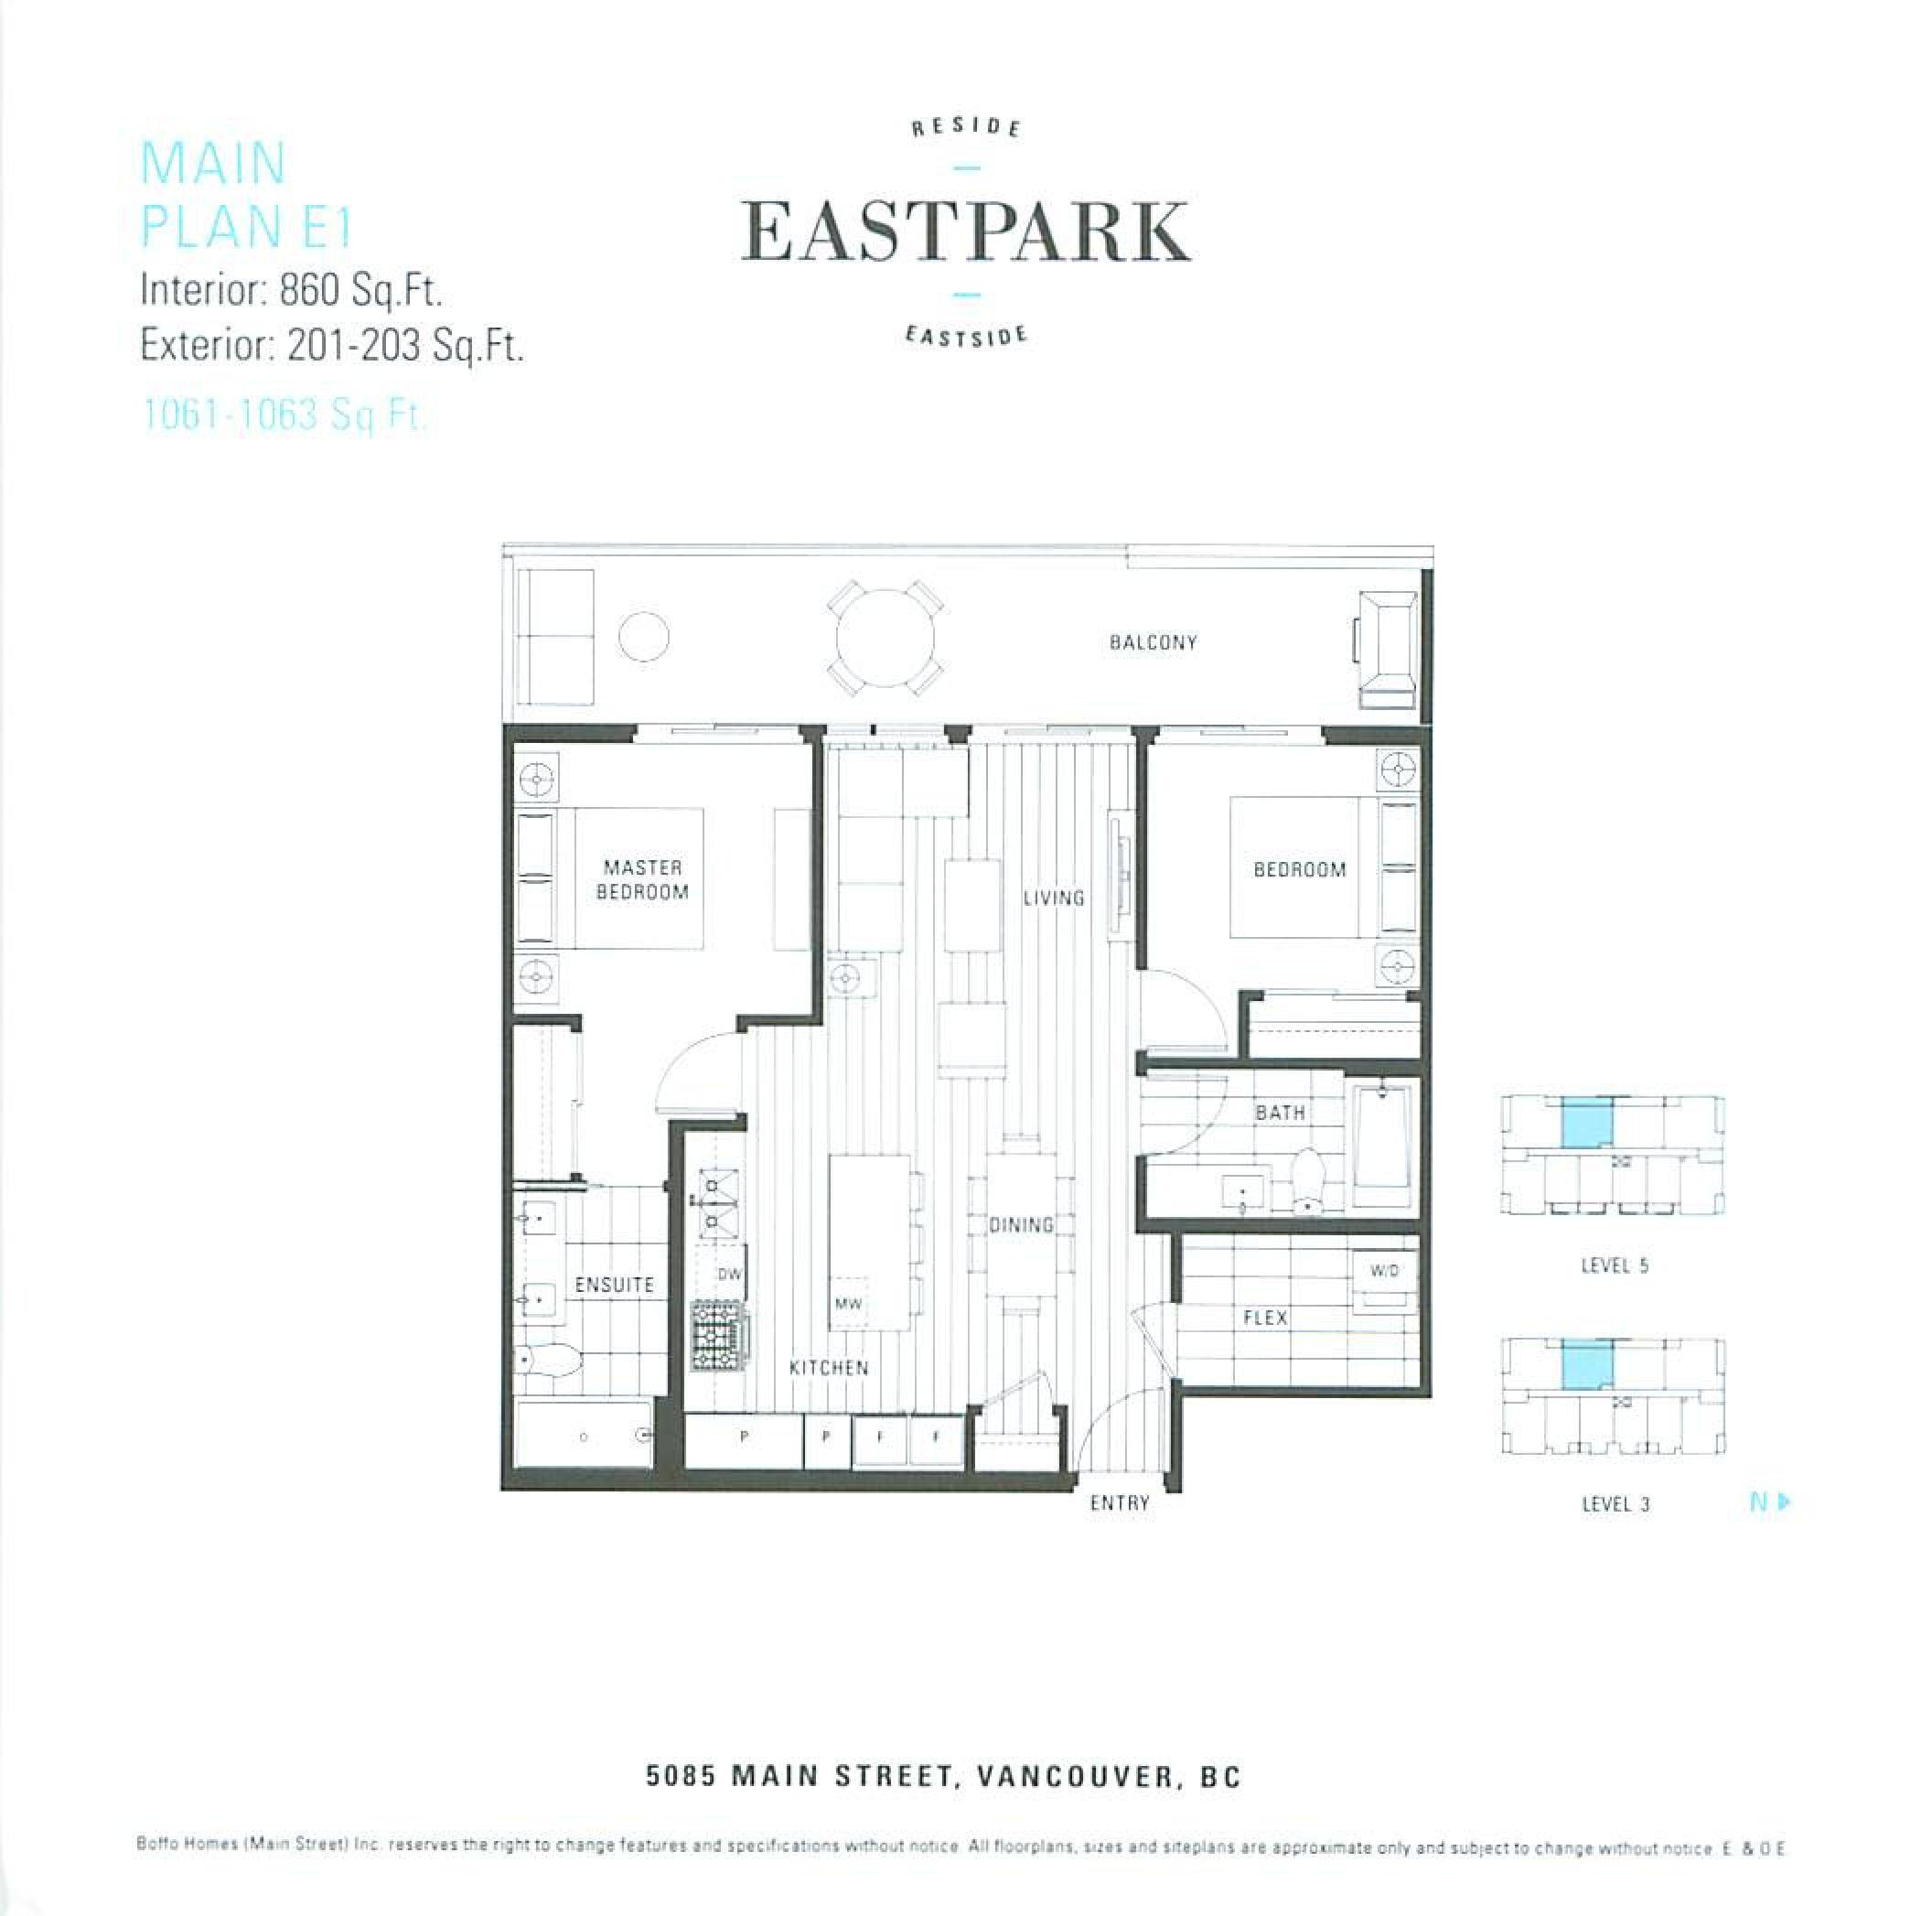 EastPark Main Smaller Floor Plans Mike Stewart-page-006